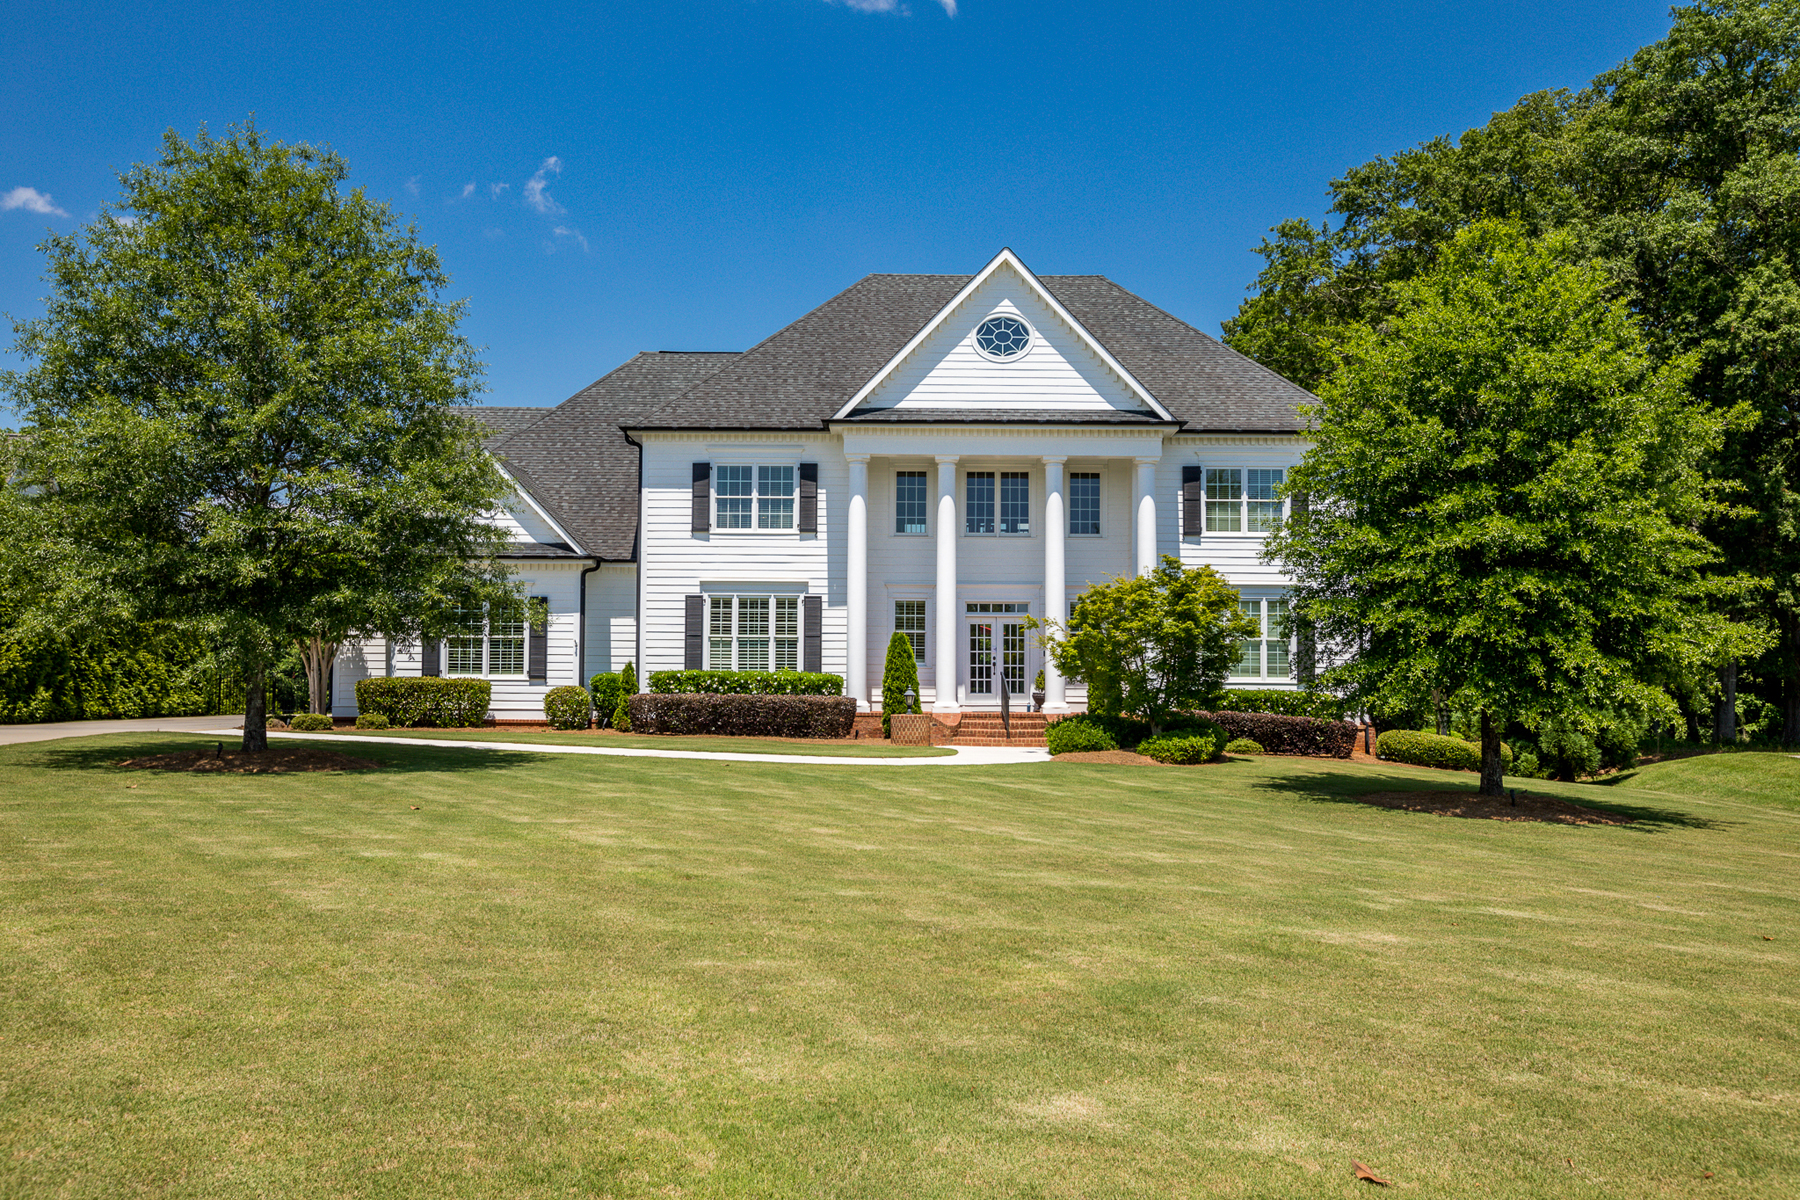 Single Family Homes для того Продажа на Sophisticated Greek Revival with Spectacular Pool and Spa on Golf Course 585 Wentworth Court, Fayetteville, Джорджия 30215 Соединенные Штаты